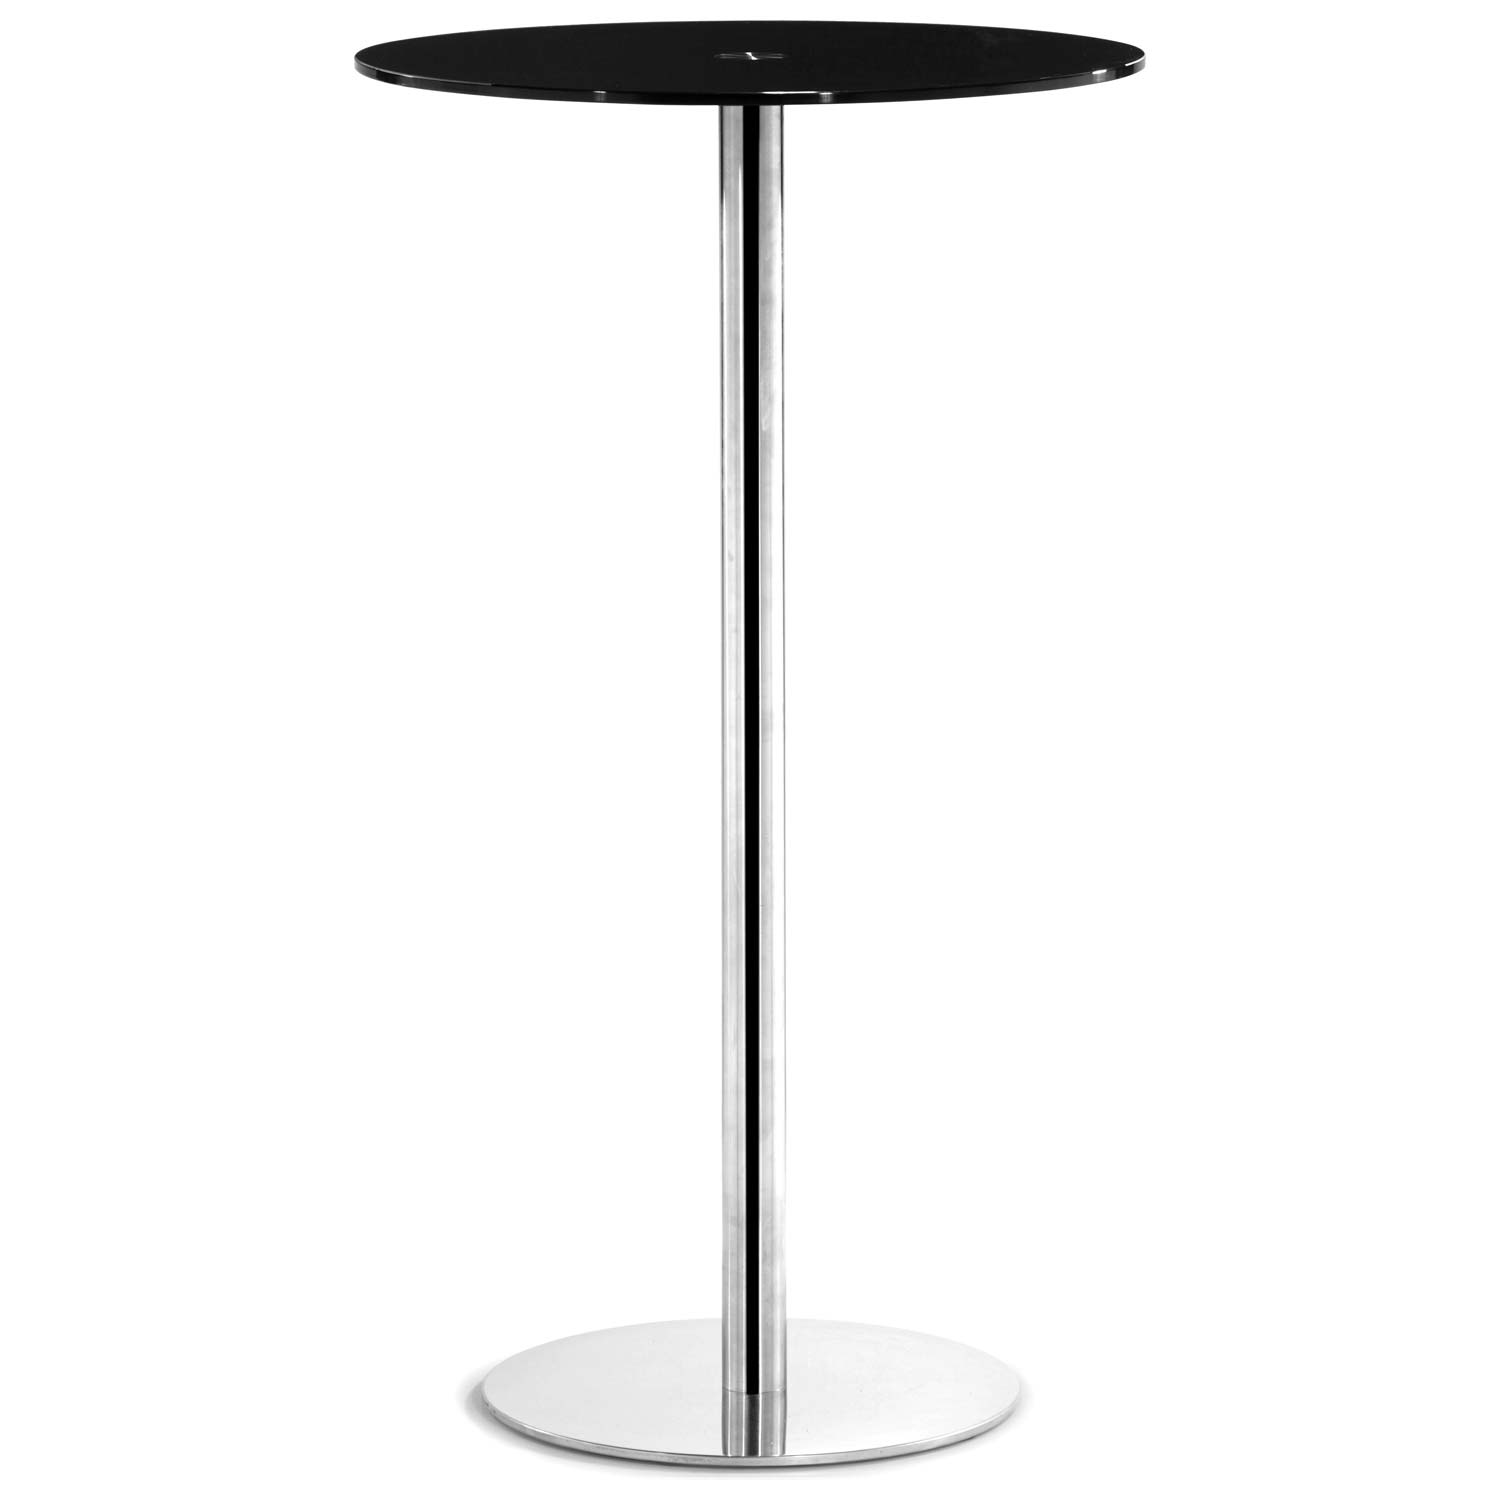 Cyclone Round Bar Table - Chrome Base, Black Glass - ZM-601170